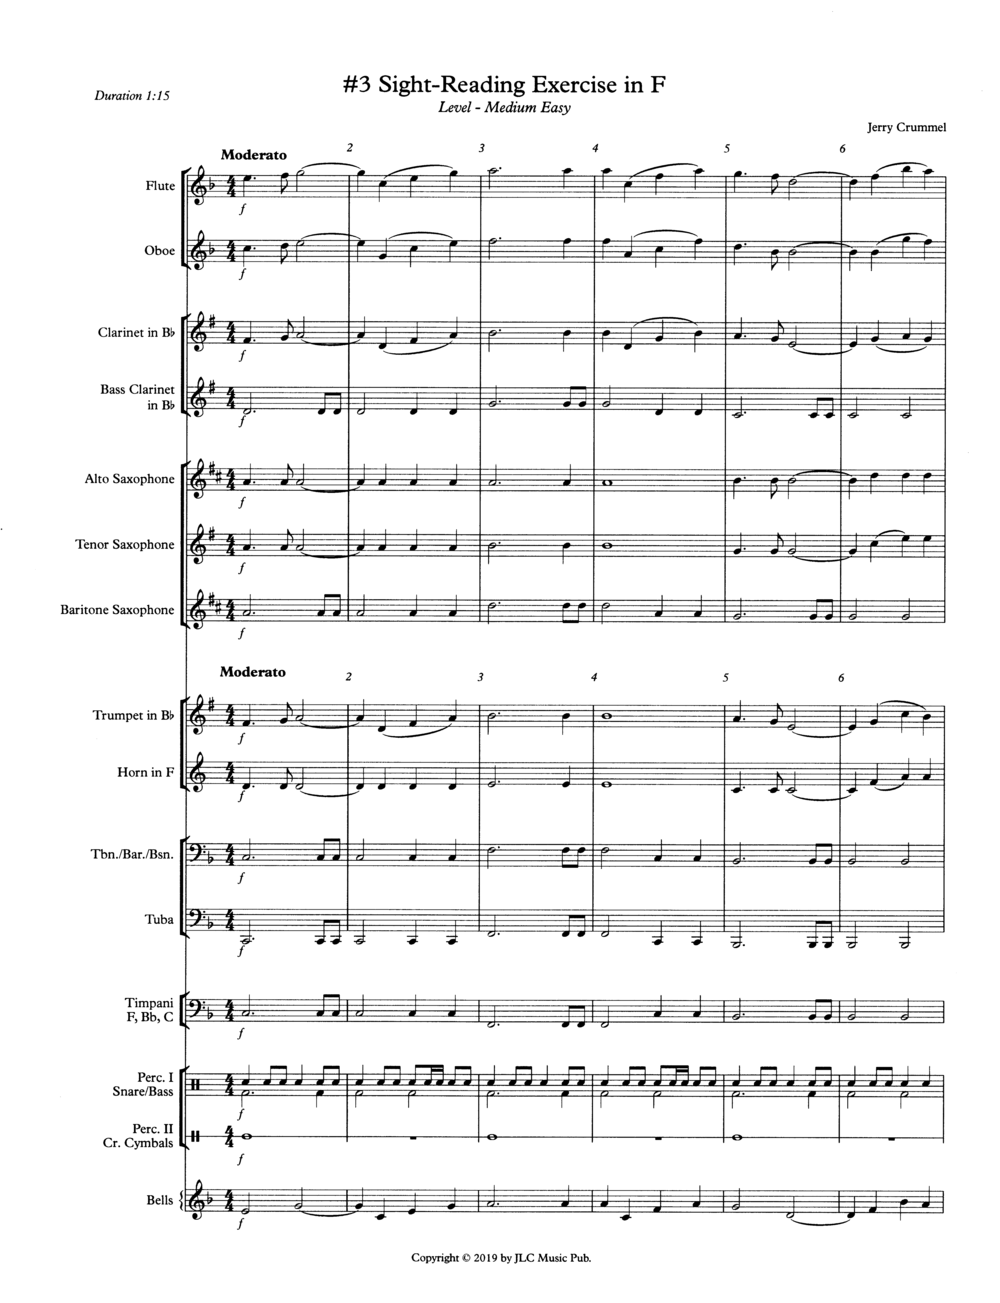 #3 Sight-Reading Exercise in F02122019.png